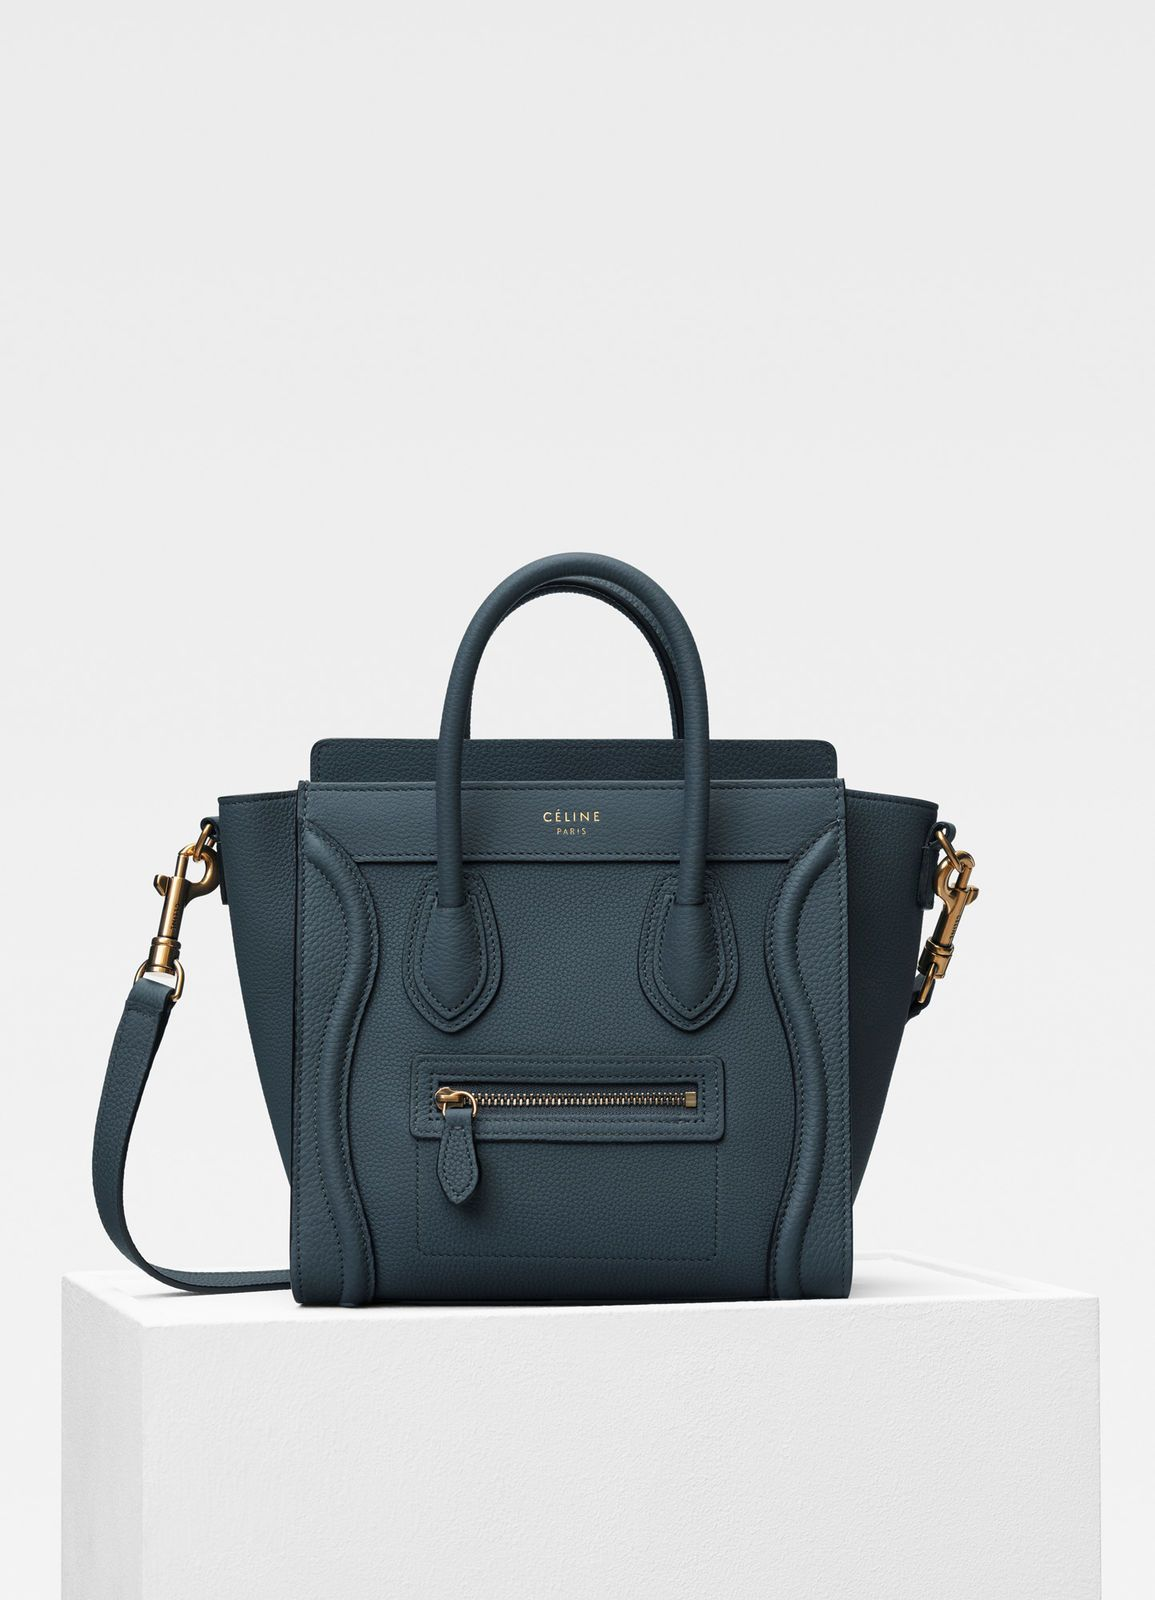 Céline Nano Luggage Tote in Slate Blue ($2,000)